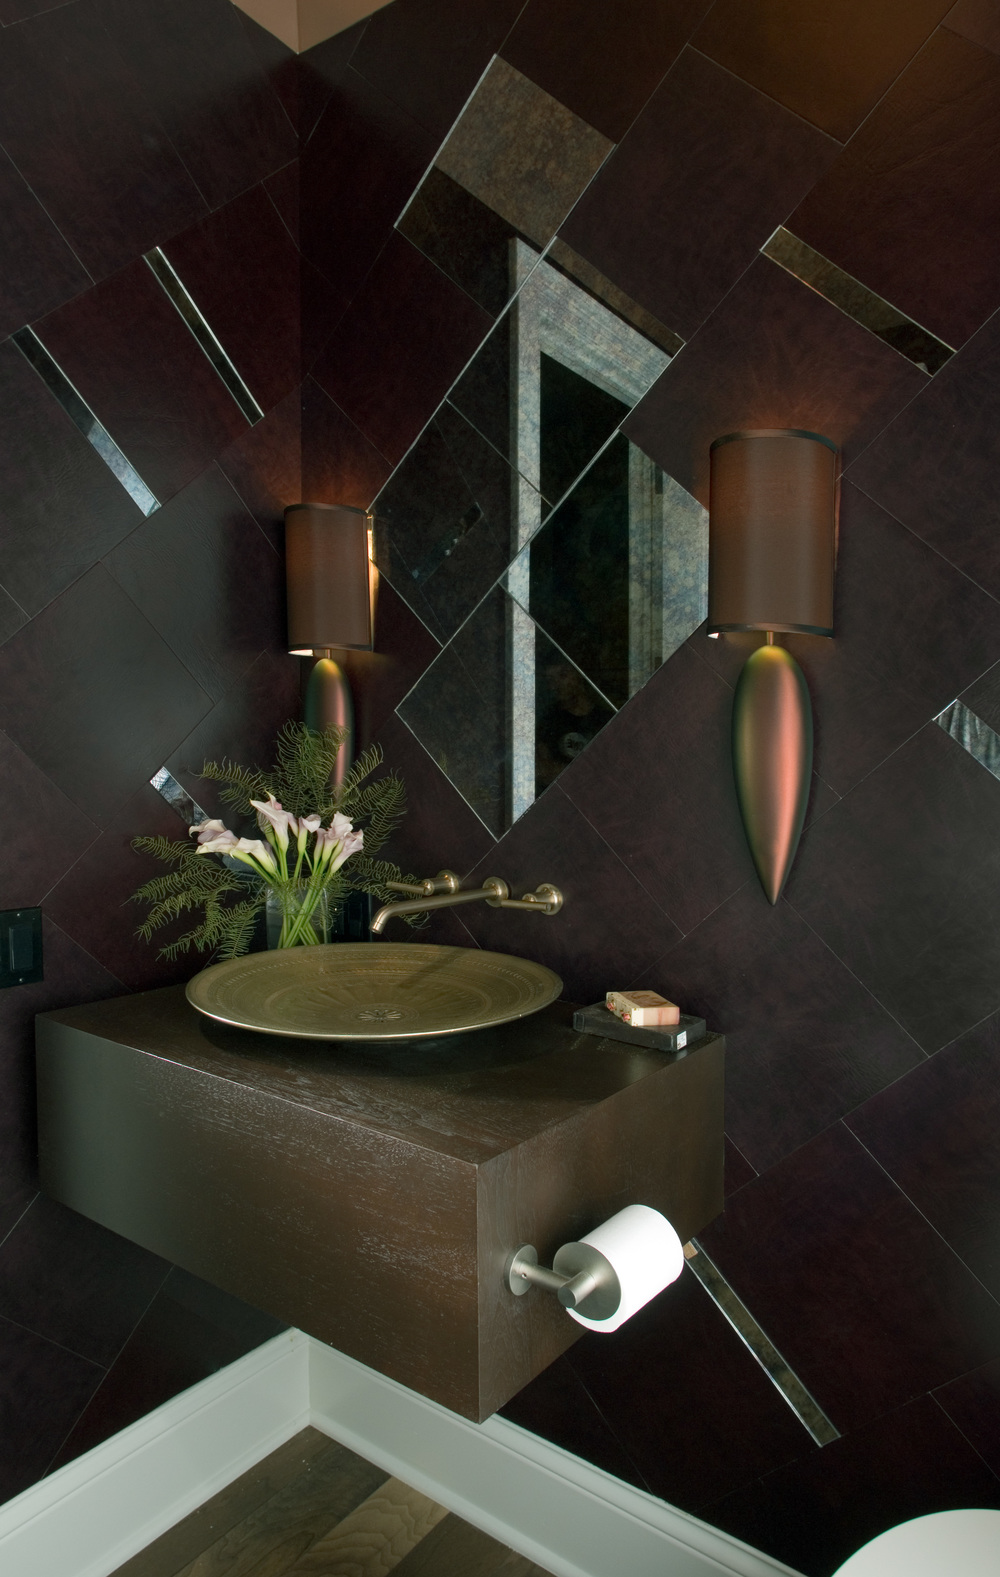 EcoDomo - Recycled Leather - bathroom novelli photo - design susan friedman 2008.jpg